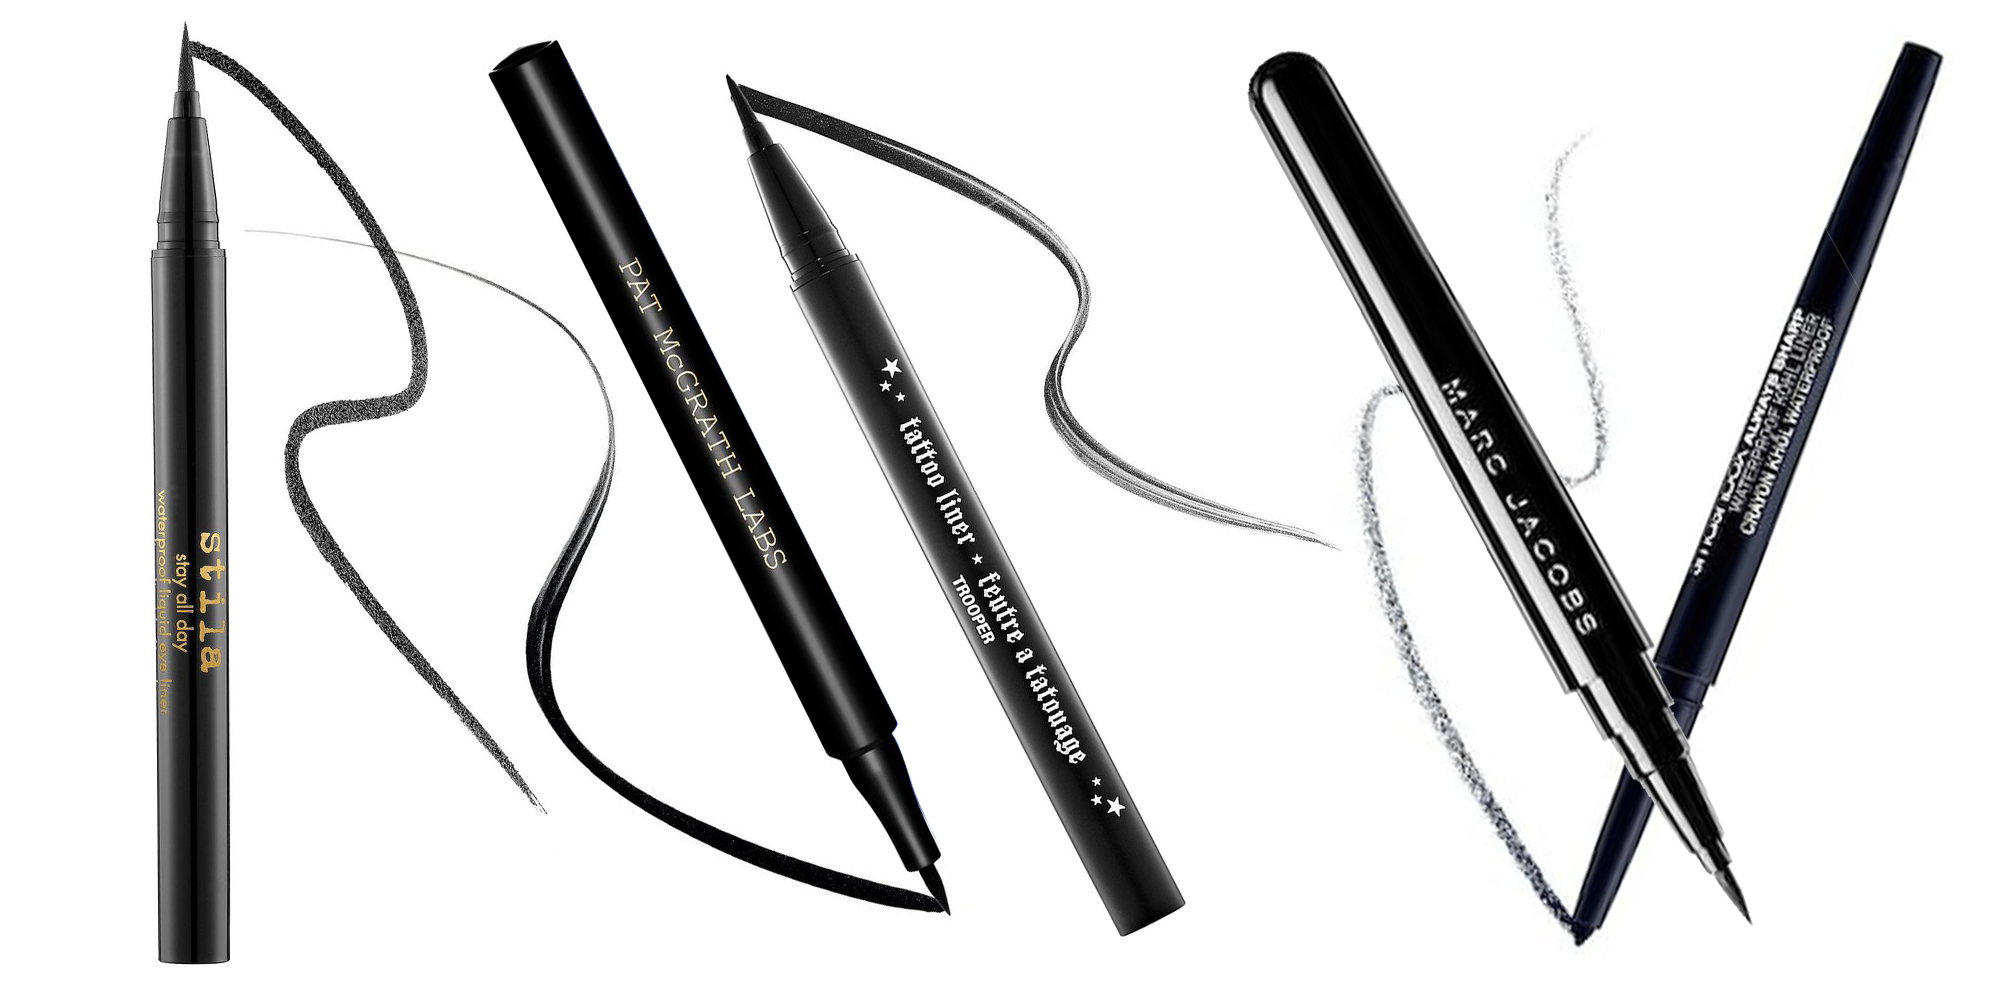 The Best Waterproof Eyeliners to Survive the Summer